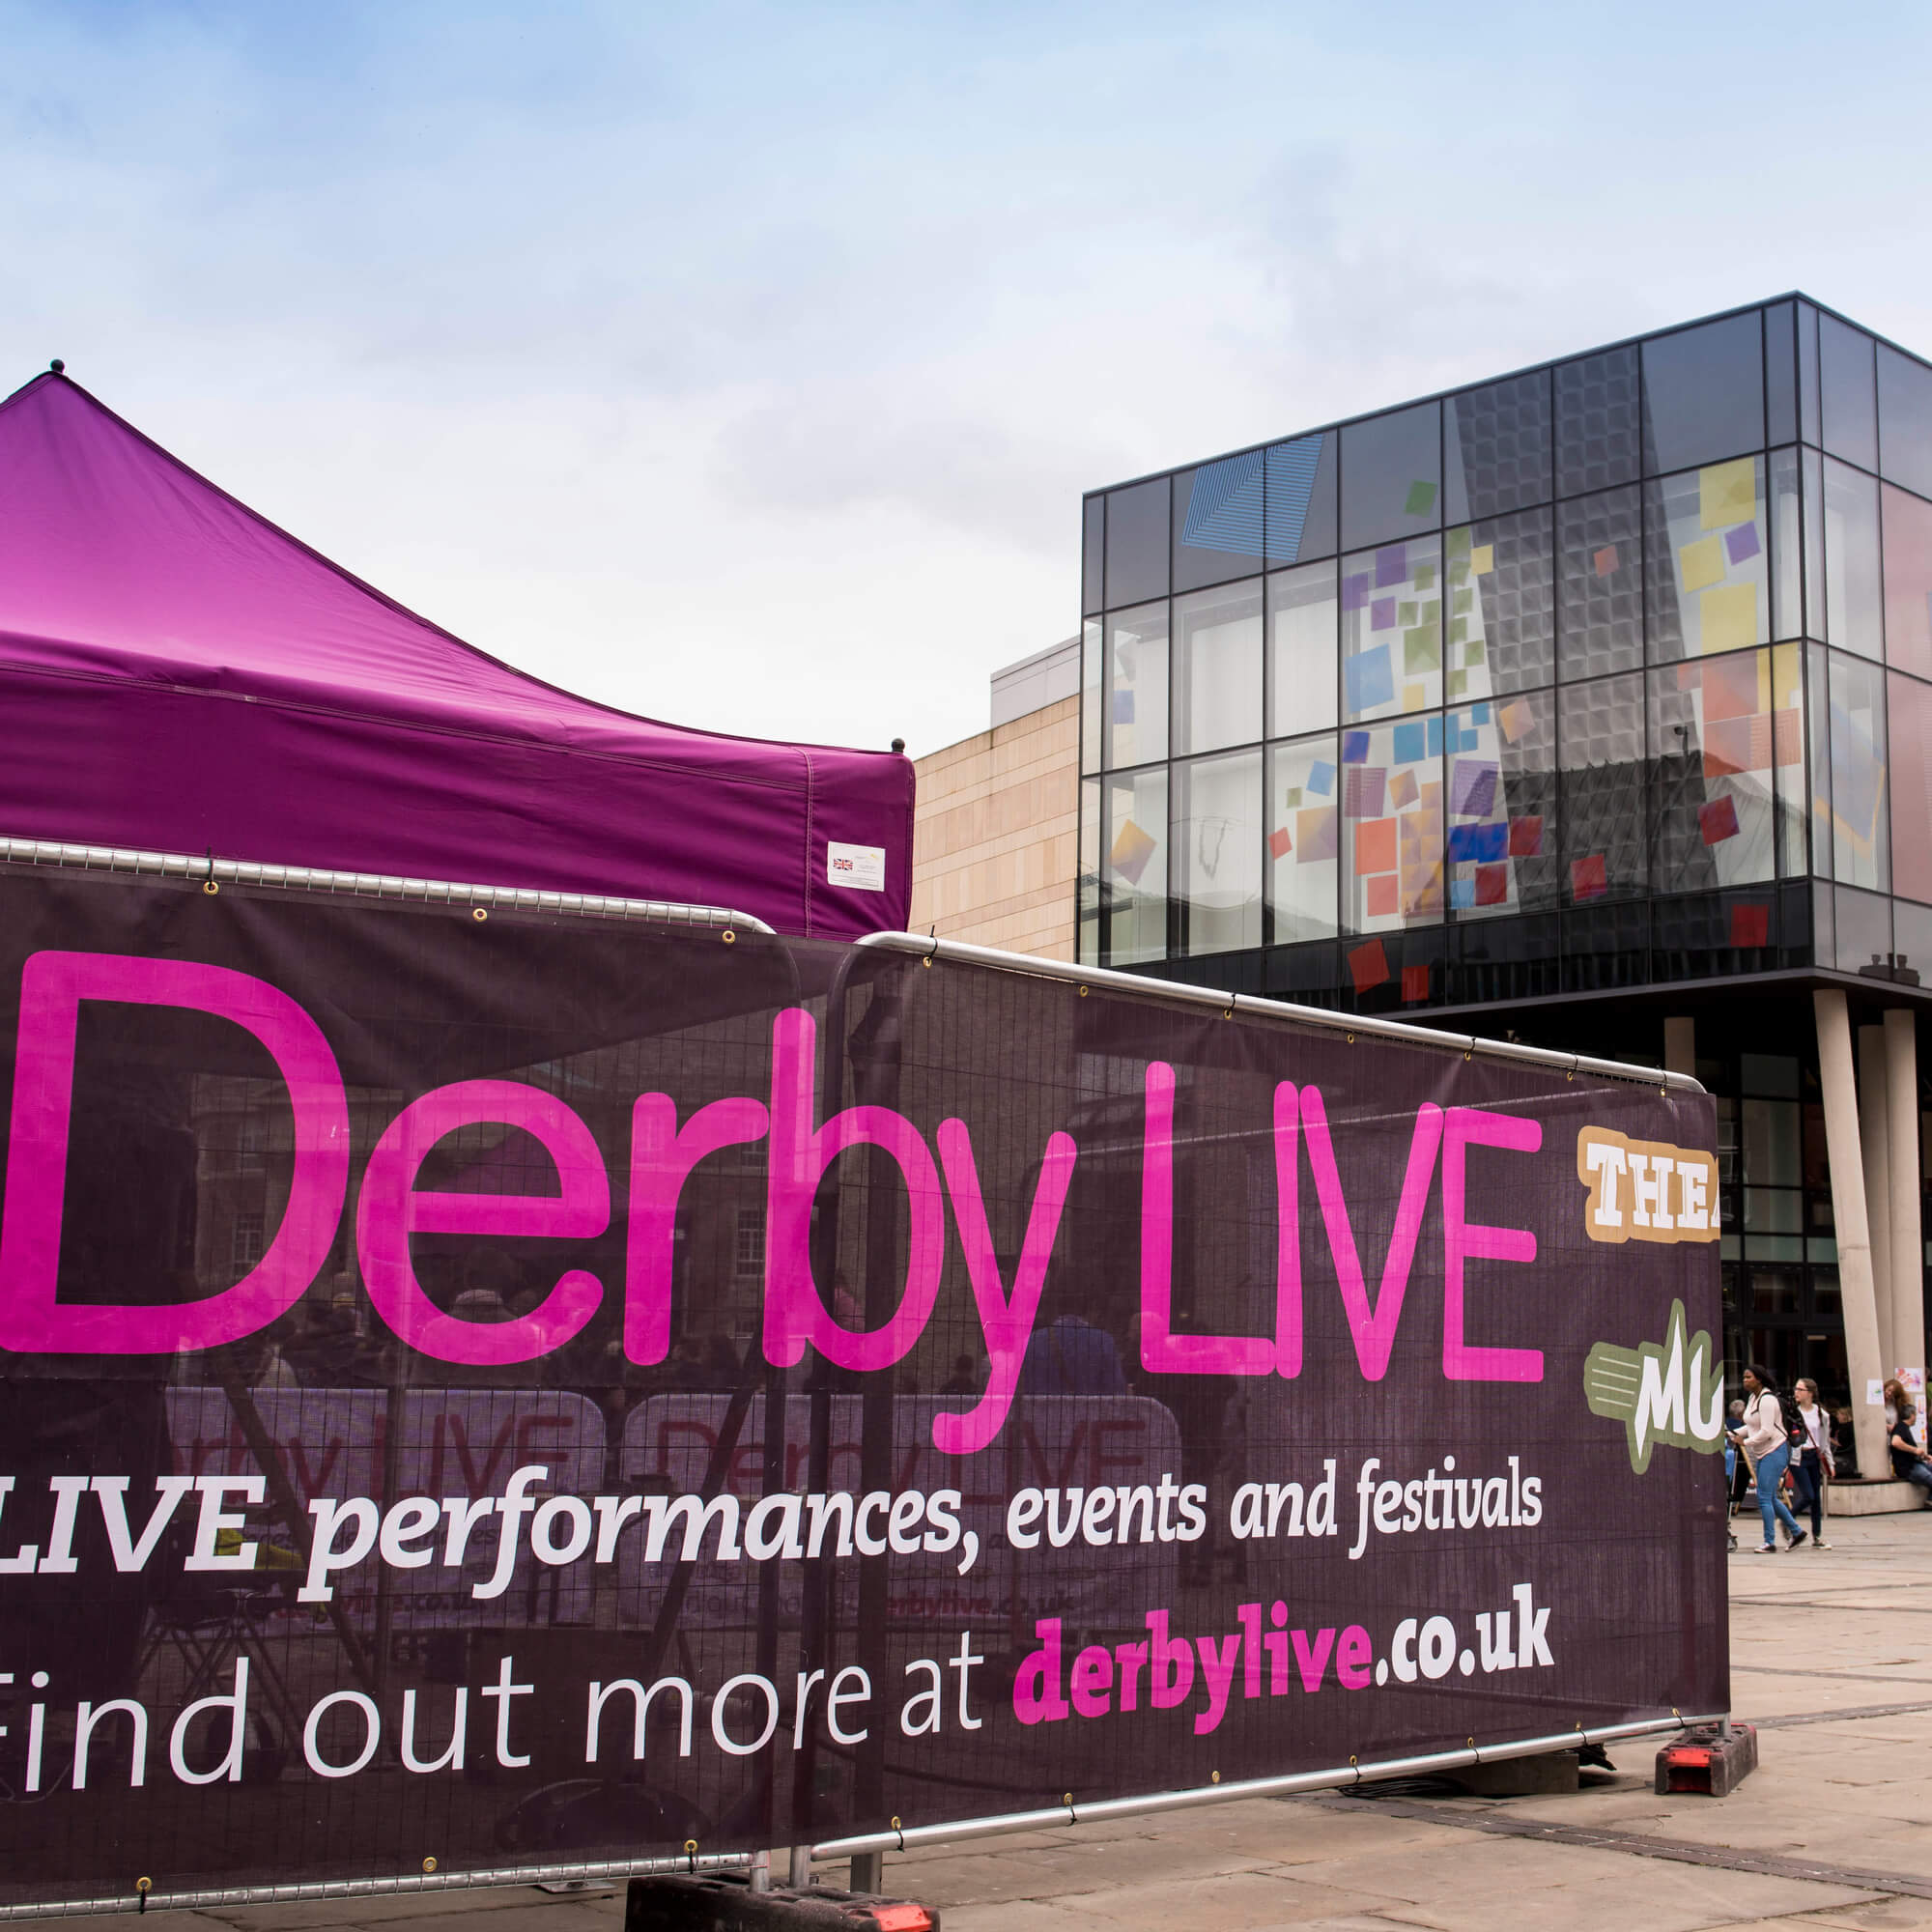 Derby Live event in city centre